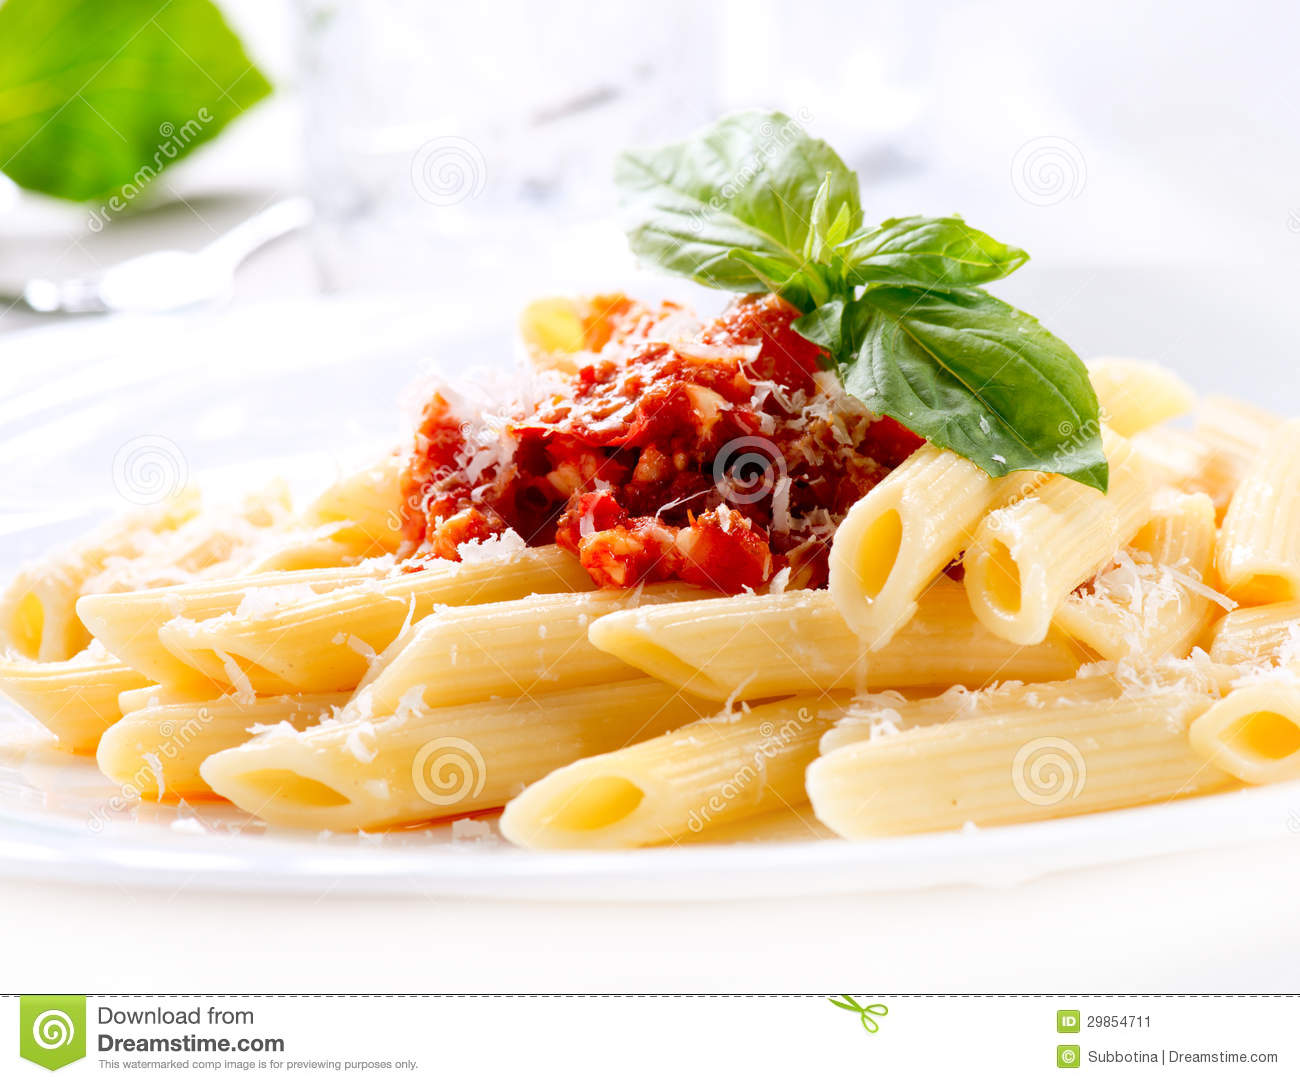 Pasta Penne With Bolognese Sauce Stock Image - Image: 29854711